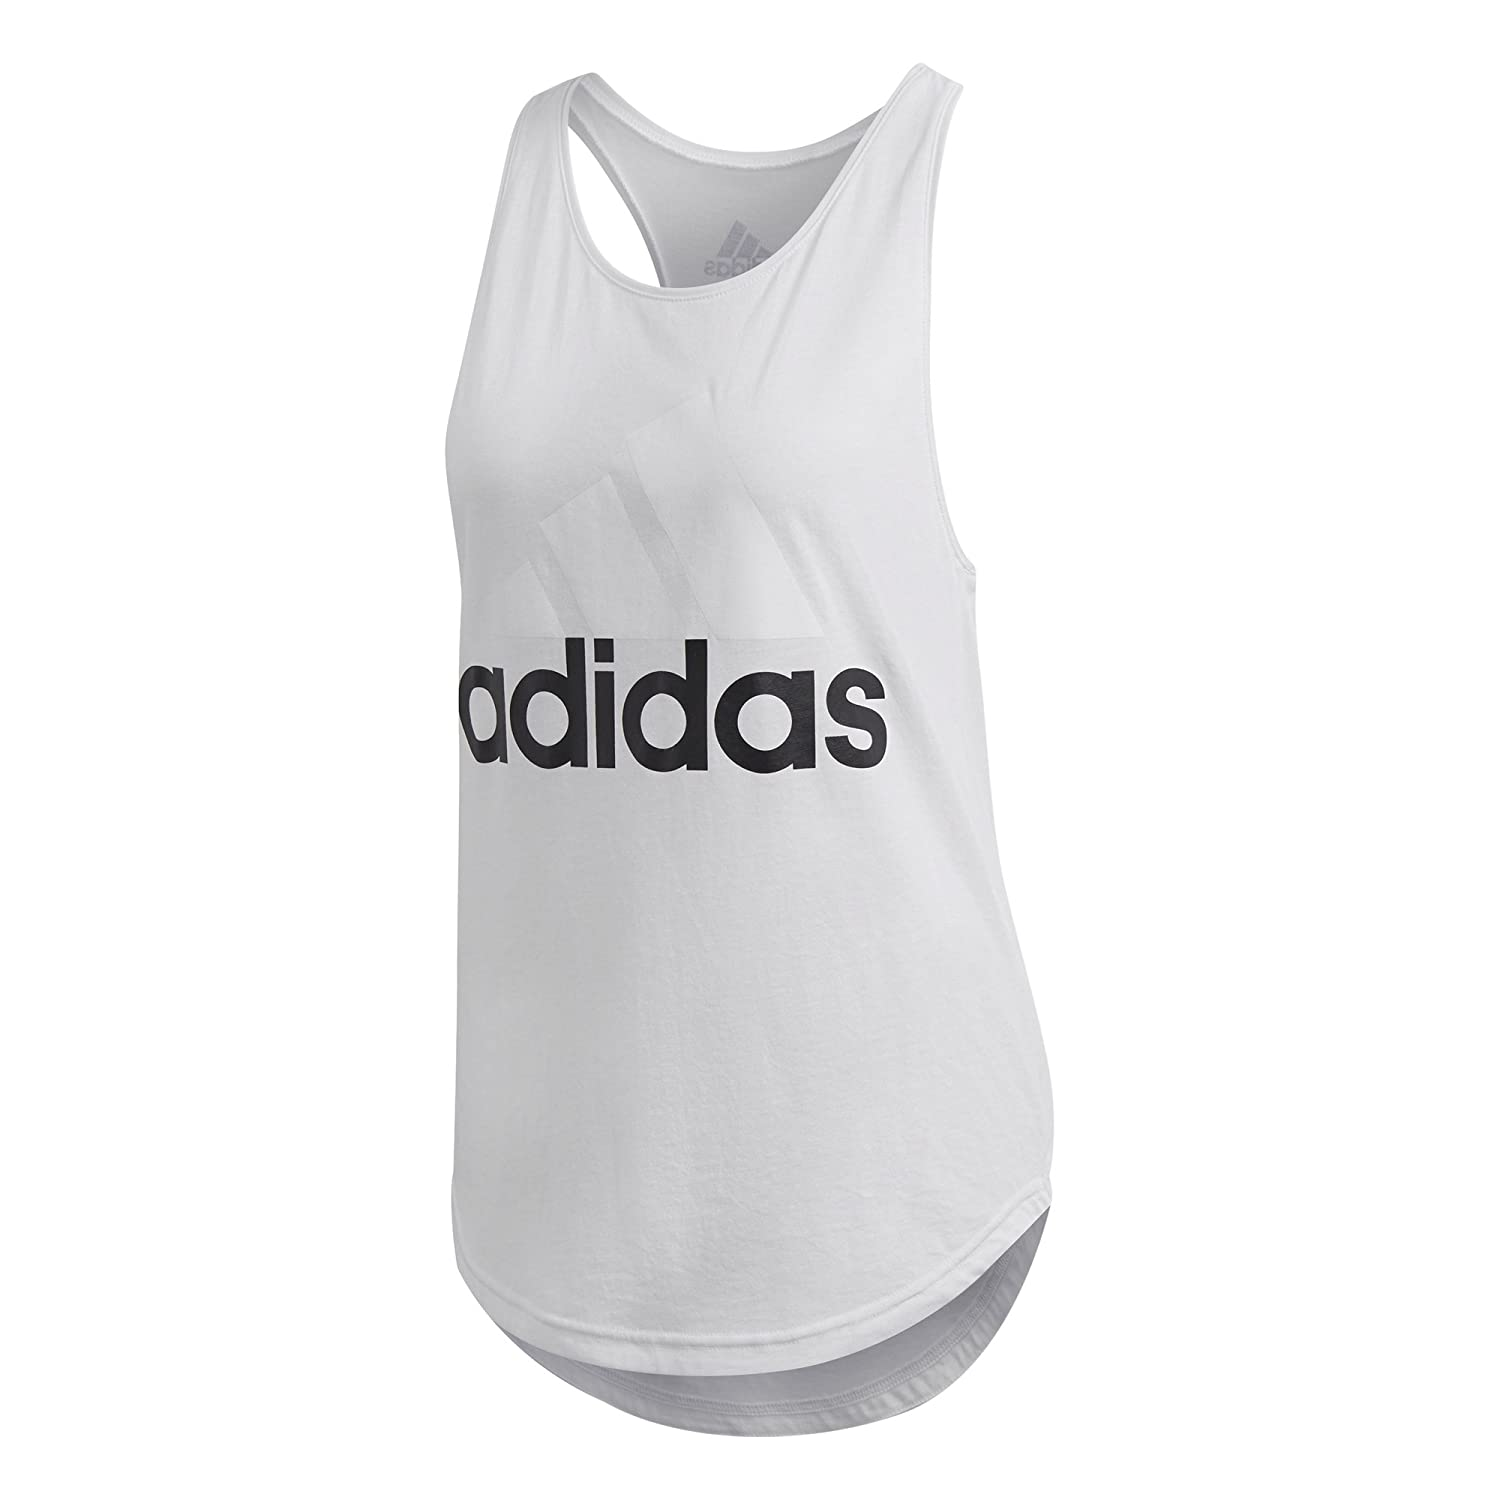 Adidas Women's Essentials Linear Loose Tank Top by Adidas